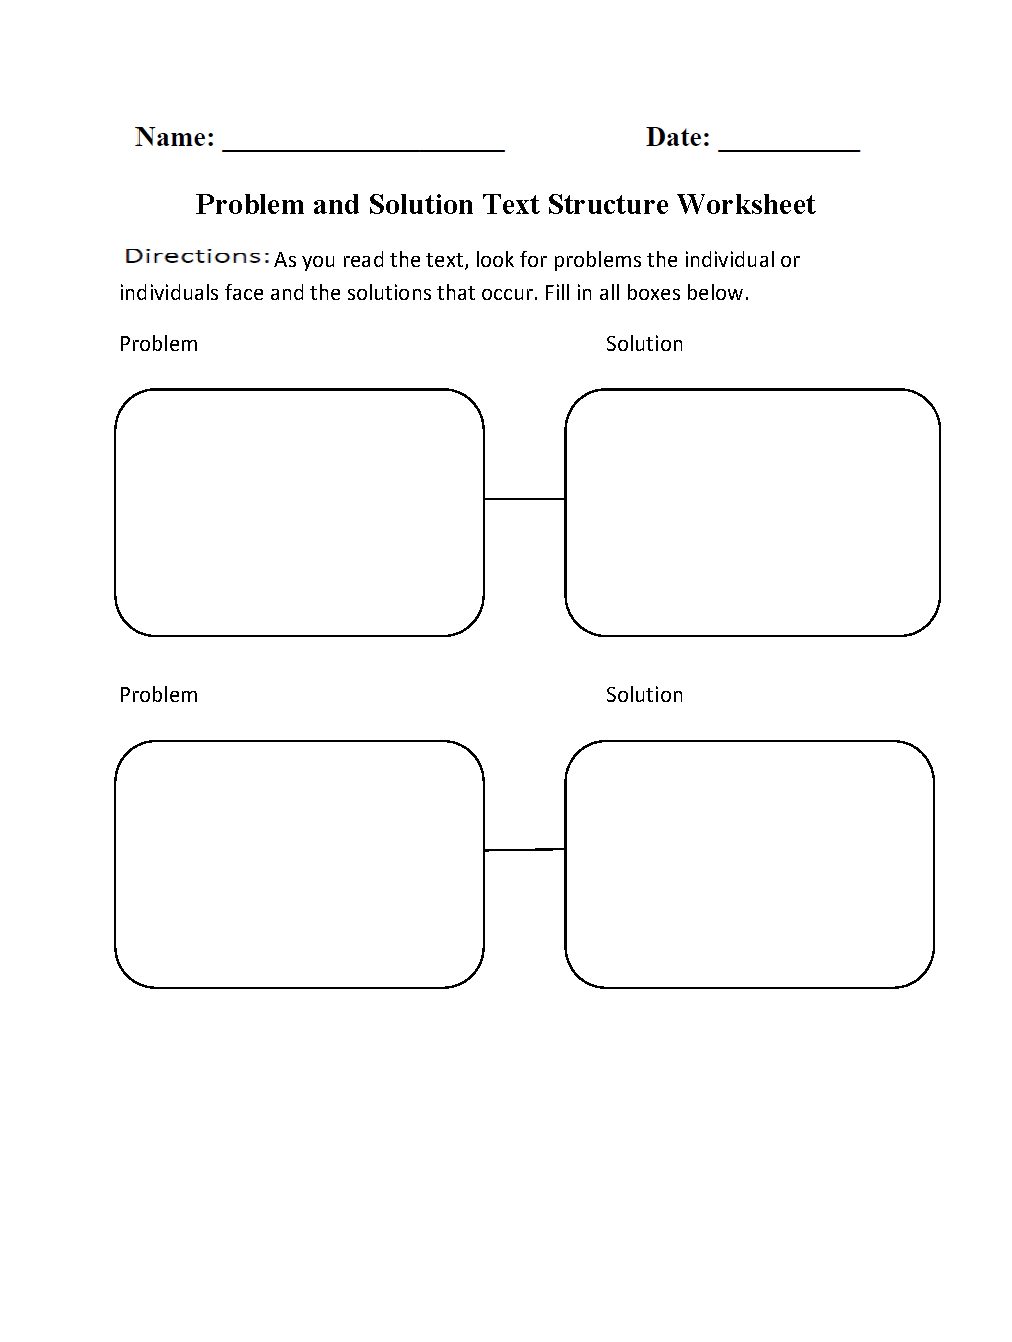 ... Structure Worksheets | Problem and Solution Text Structure Worksheets